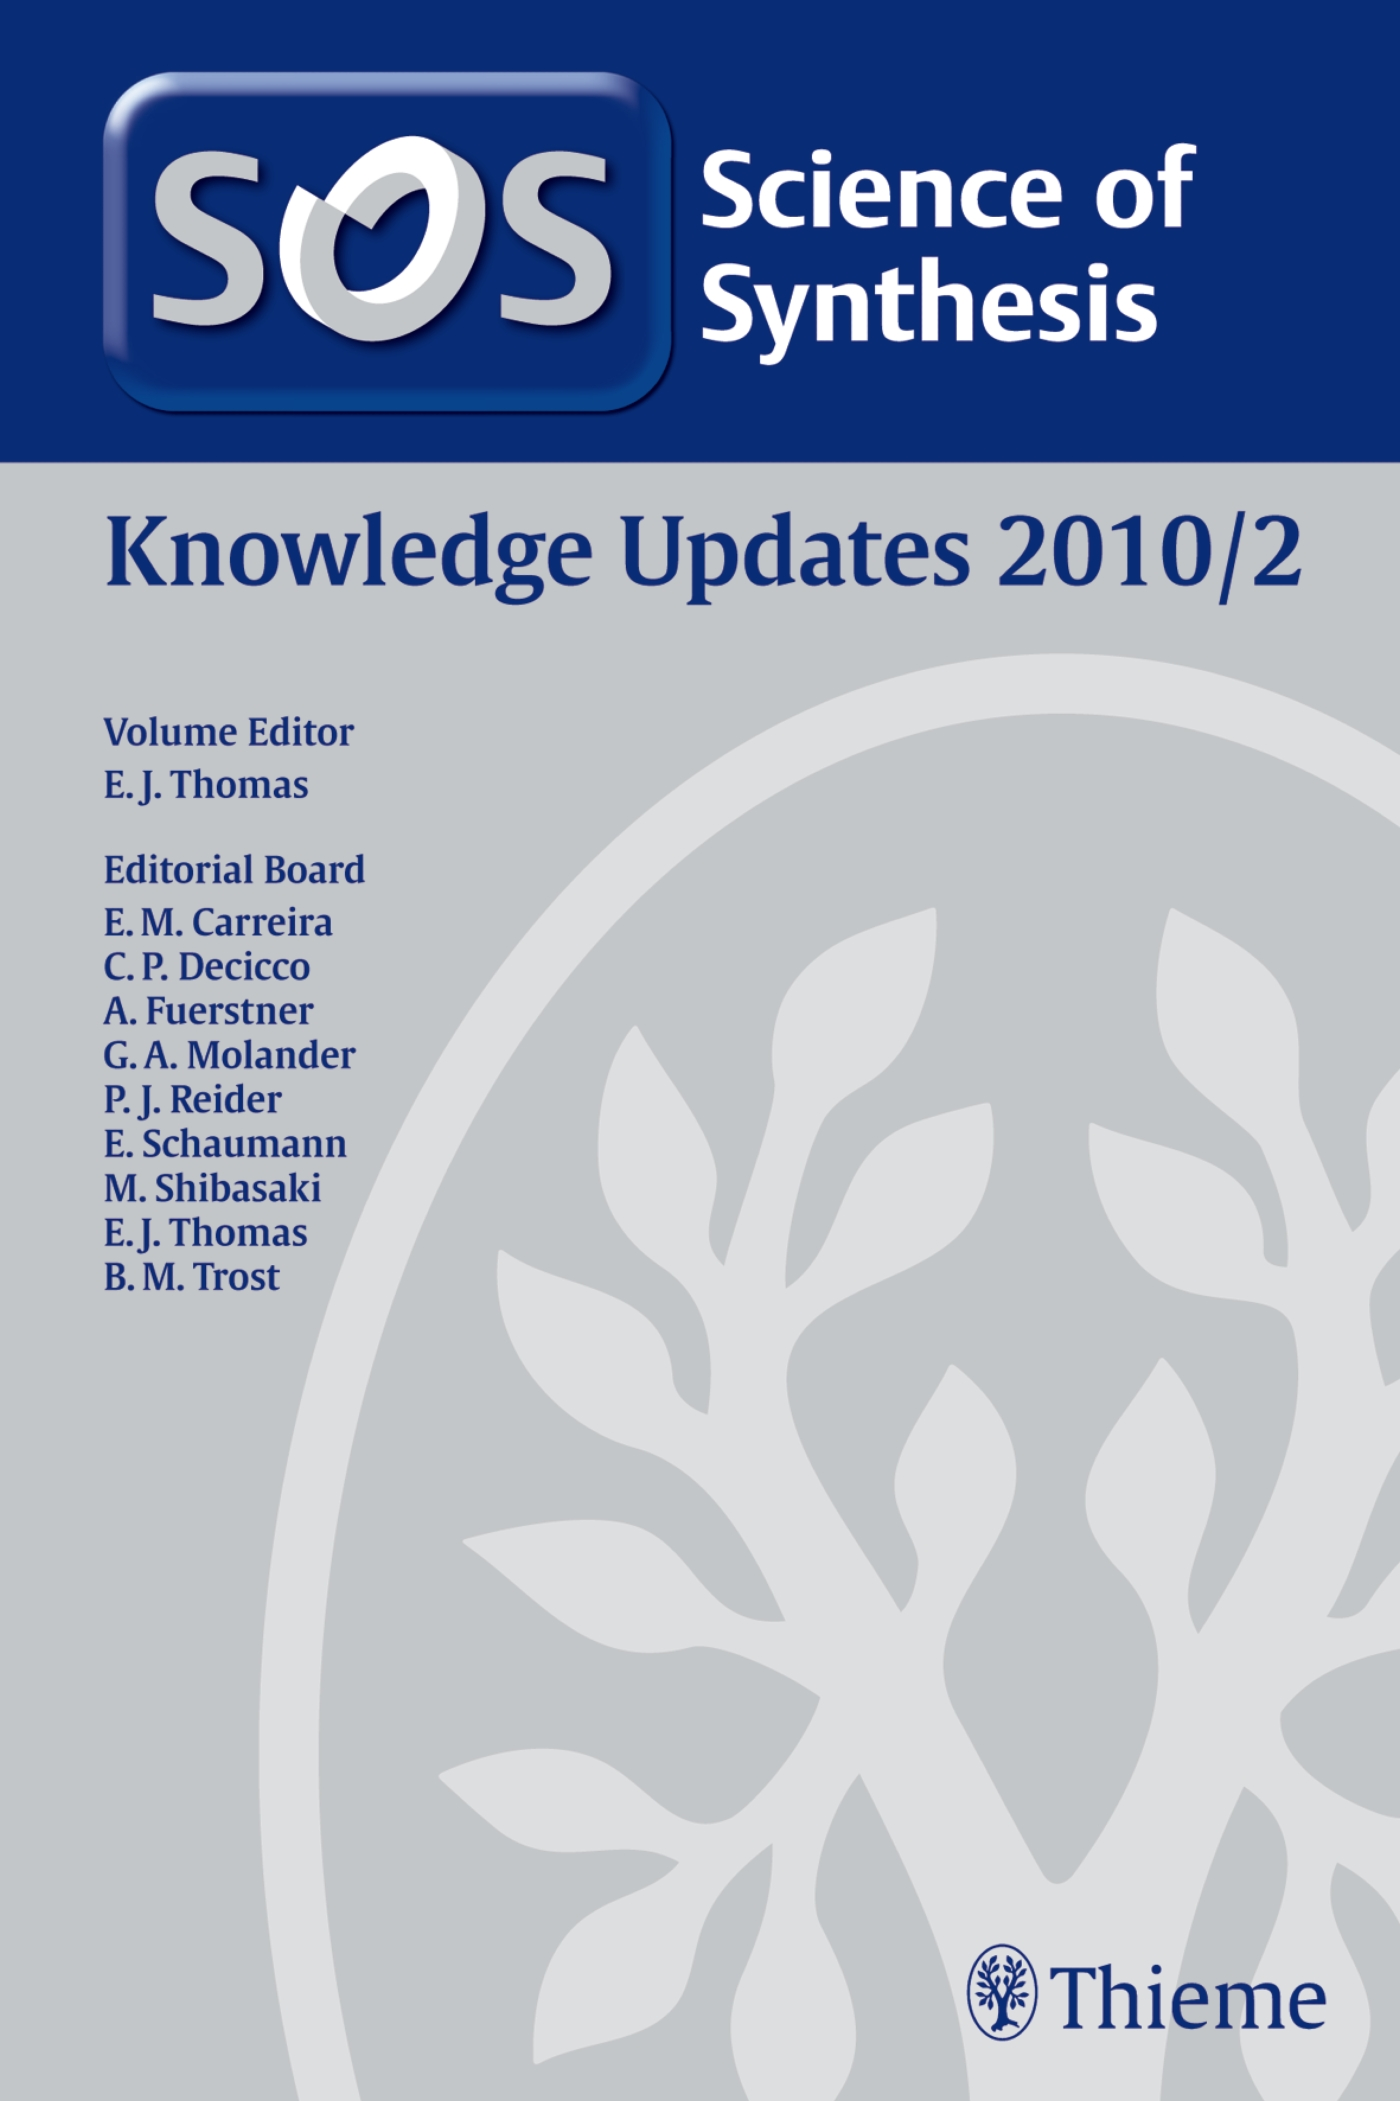 Science of Synthesis Knowledge Updates 2010 Vol. 2